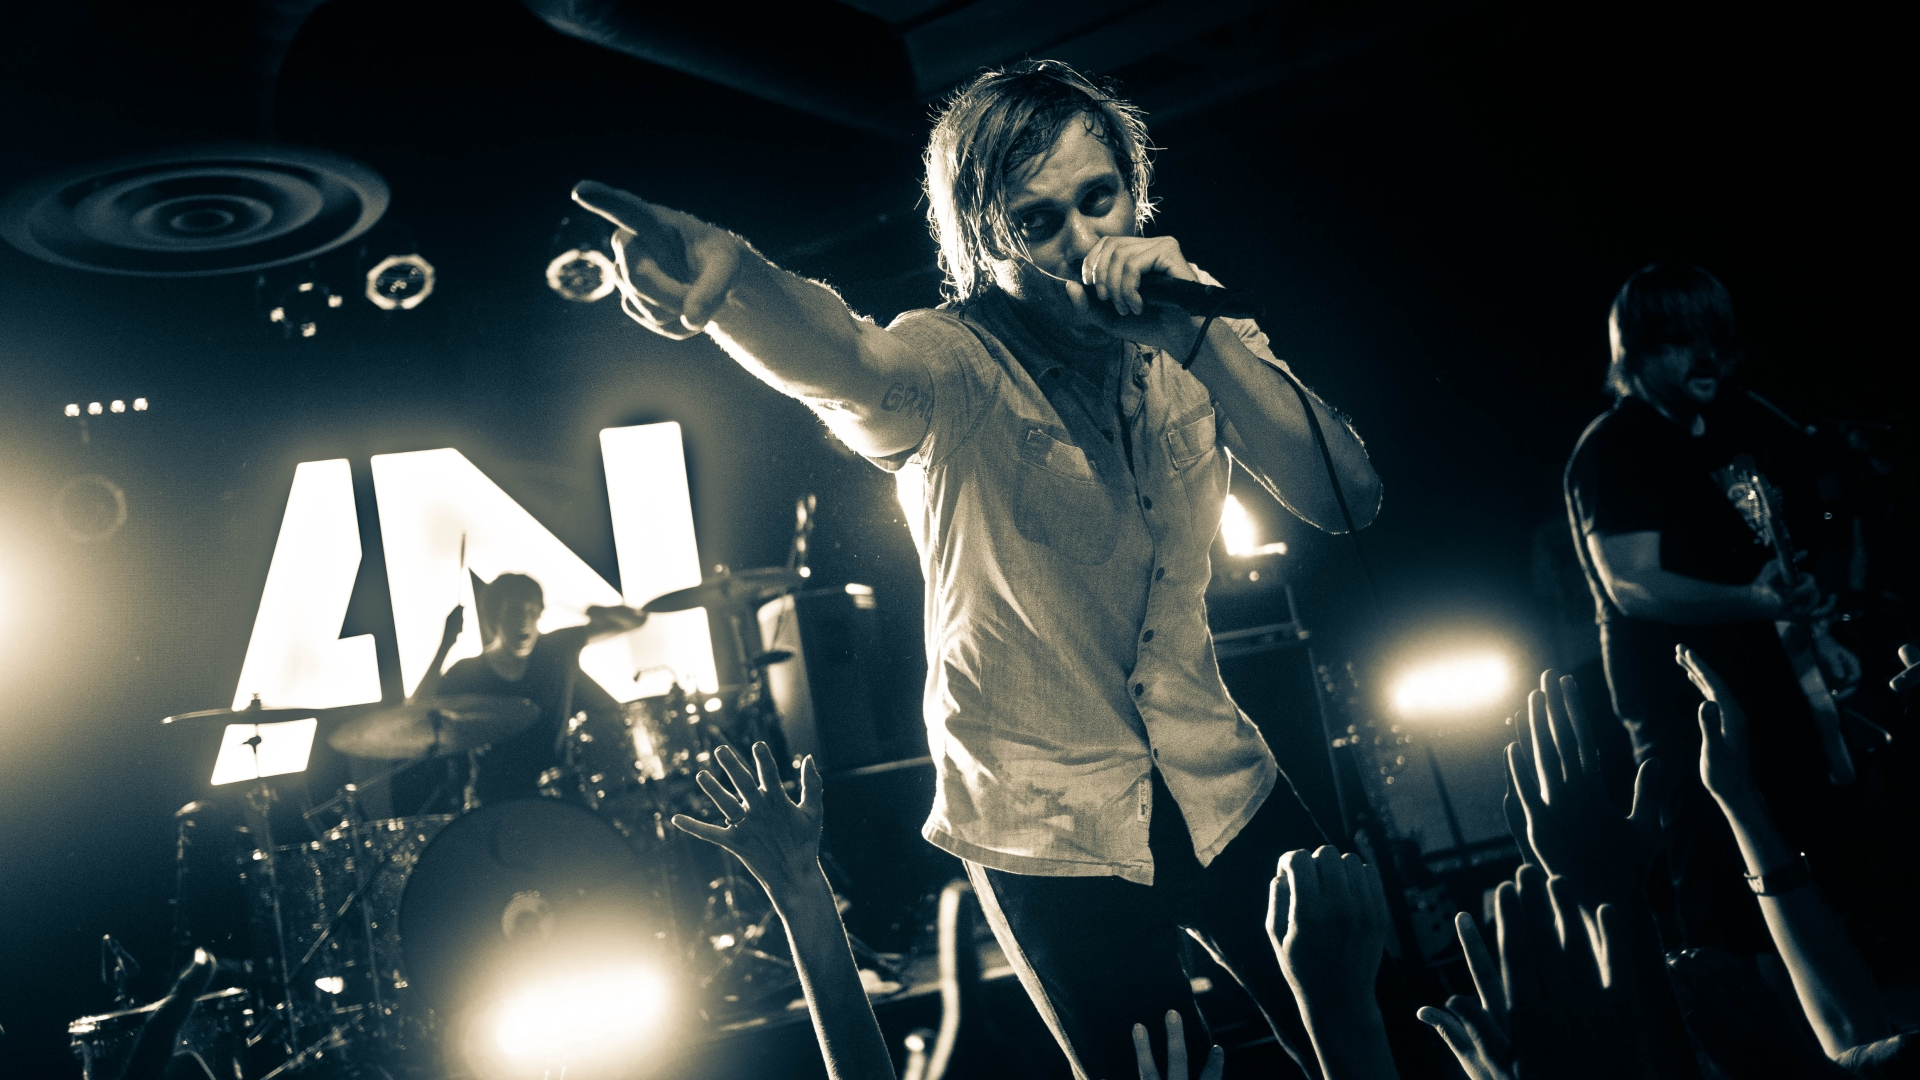 Awolnation Full HD Wallpaper And Background Image